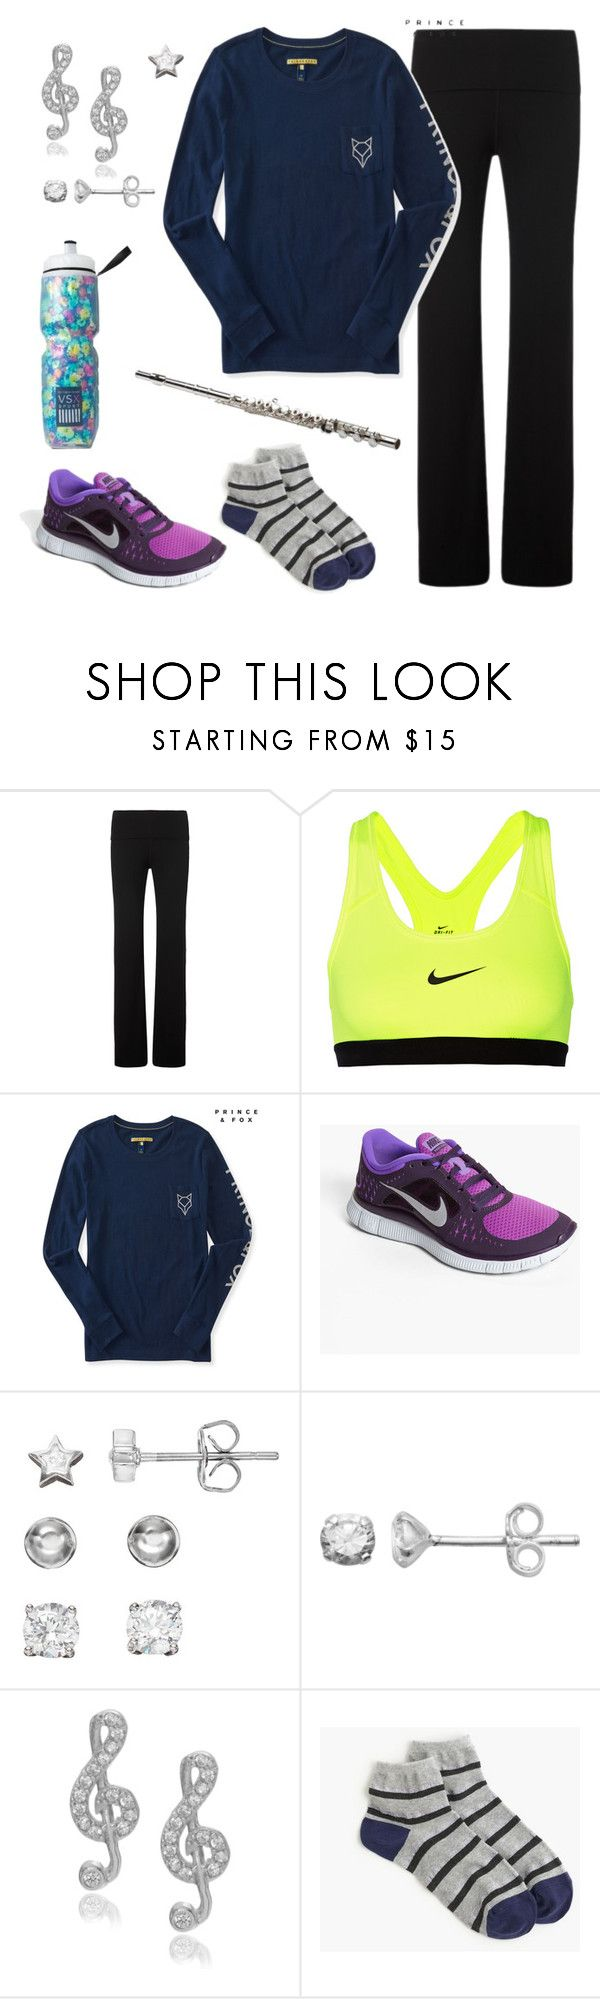 """""""BEST MARCHING BAND REHEARSAL EVER!!!!"""" by fanficqueen13 ❤ liked on Polyvore featuring Sweaty Betty, NIKE, Aéropostale, Itsy Bitsy, Journee Collection, J.Crew and Victoria's Secret"""